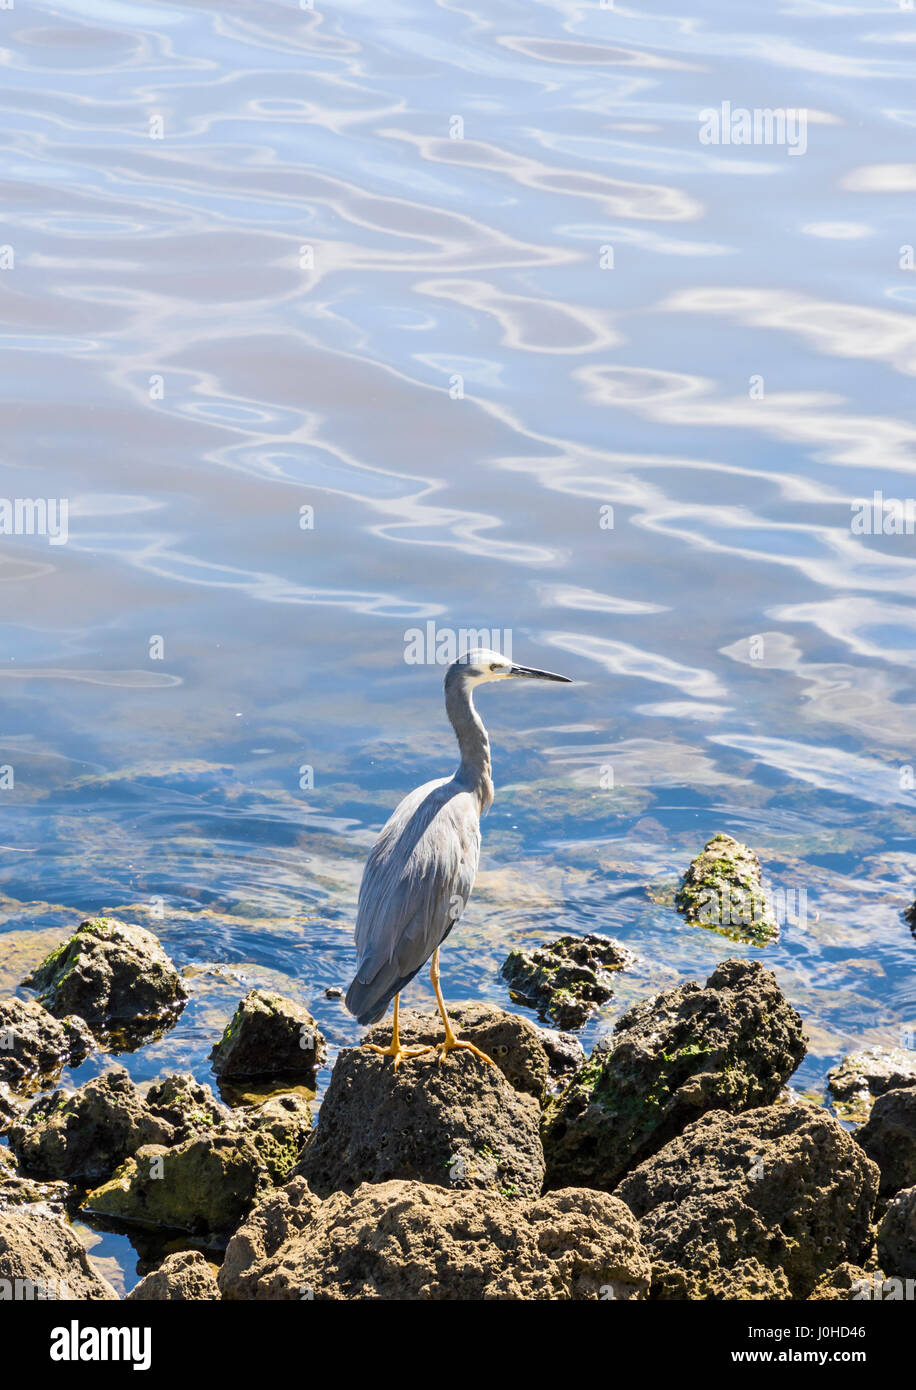 White-faced heron perched on a rock on the shore of the Swan River, Western Australia - Stock Image